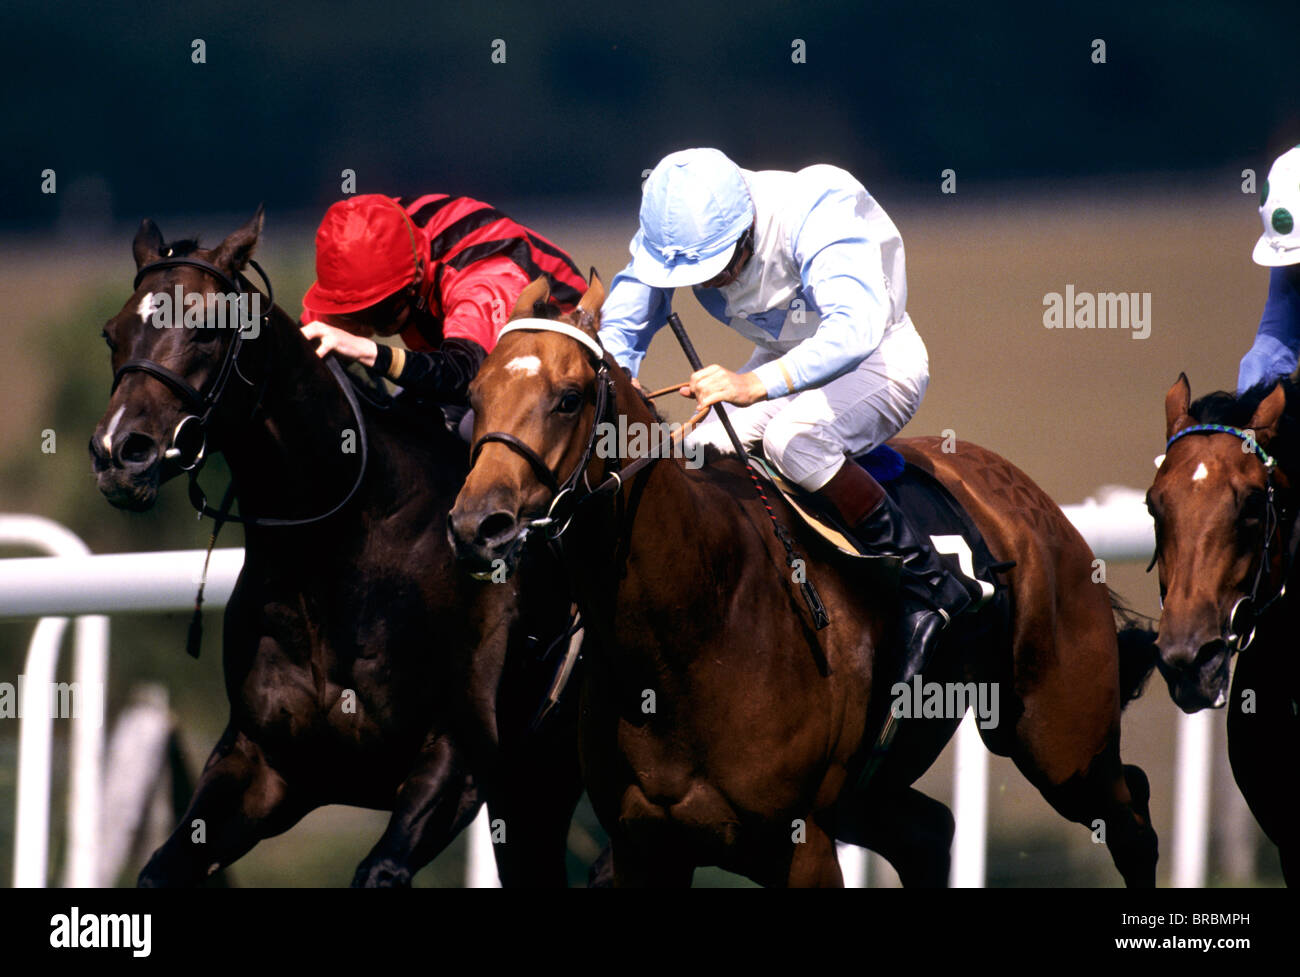 Jockeys on horse at race track lean forward as they gallop for finish line - Stock Image